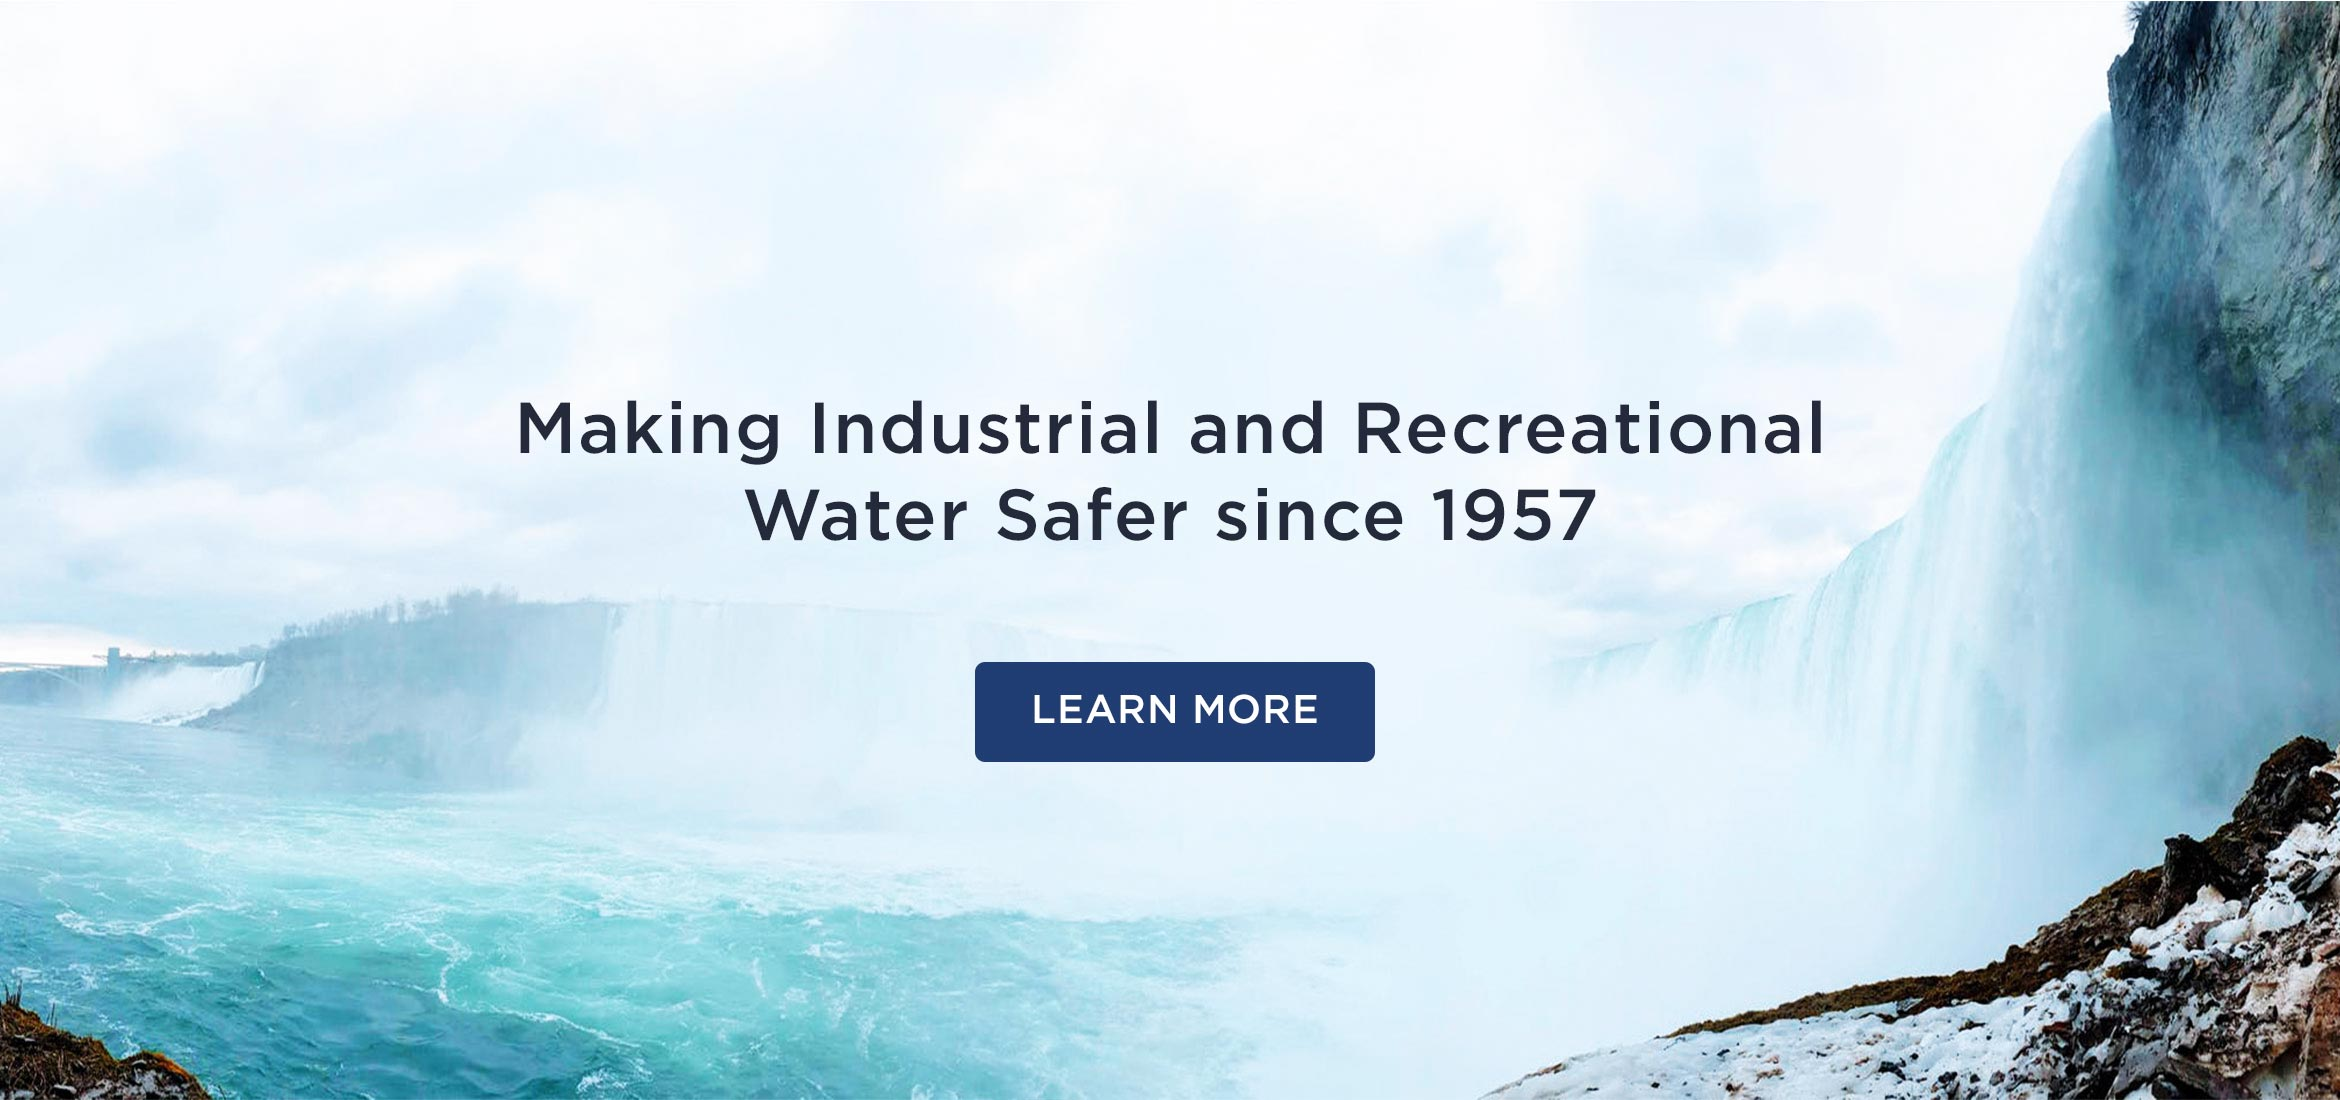 Waterline Technologies - Making Industrial and Recreational Water Safer Since 1957